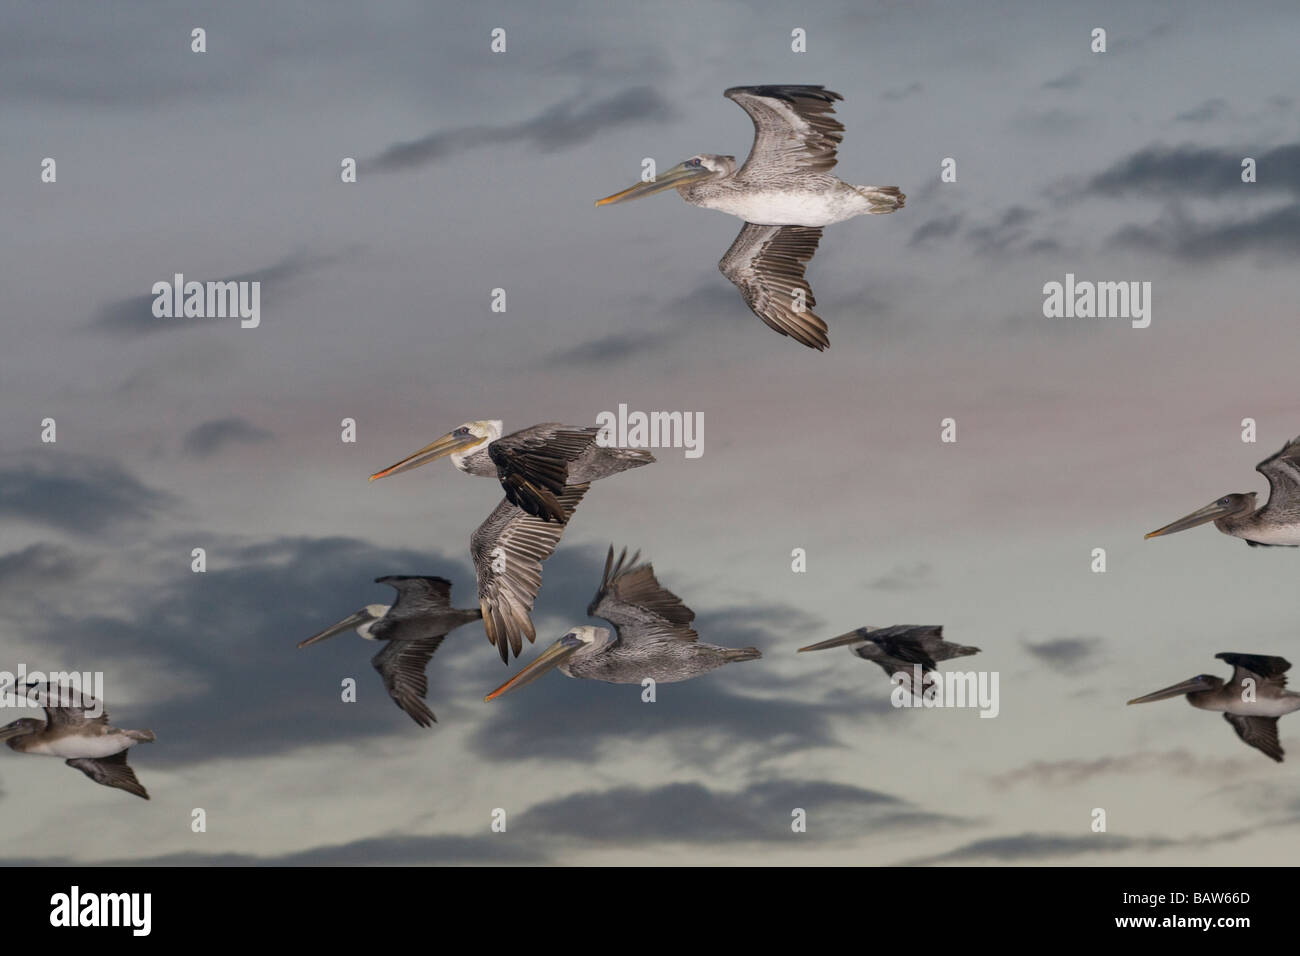 Brown Pelicans soar through the sky at dusk. - Stock Image